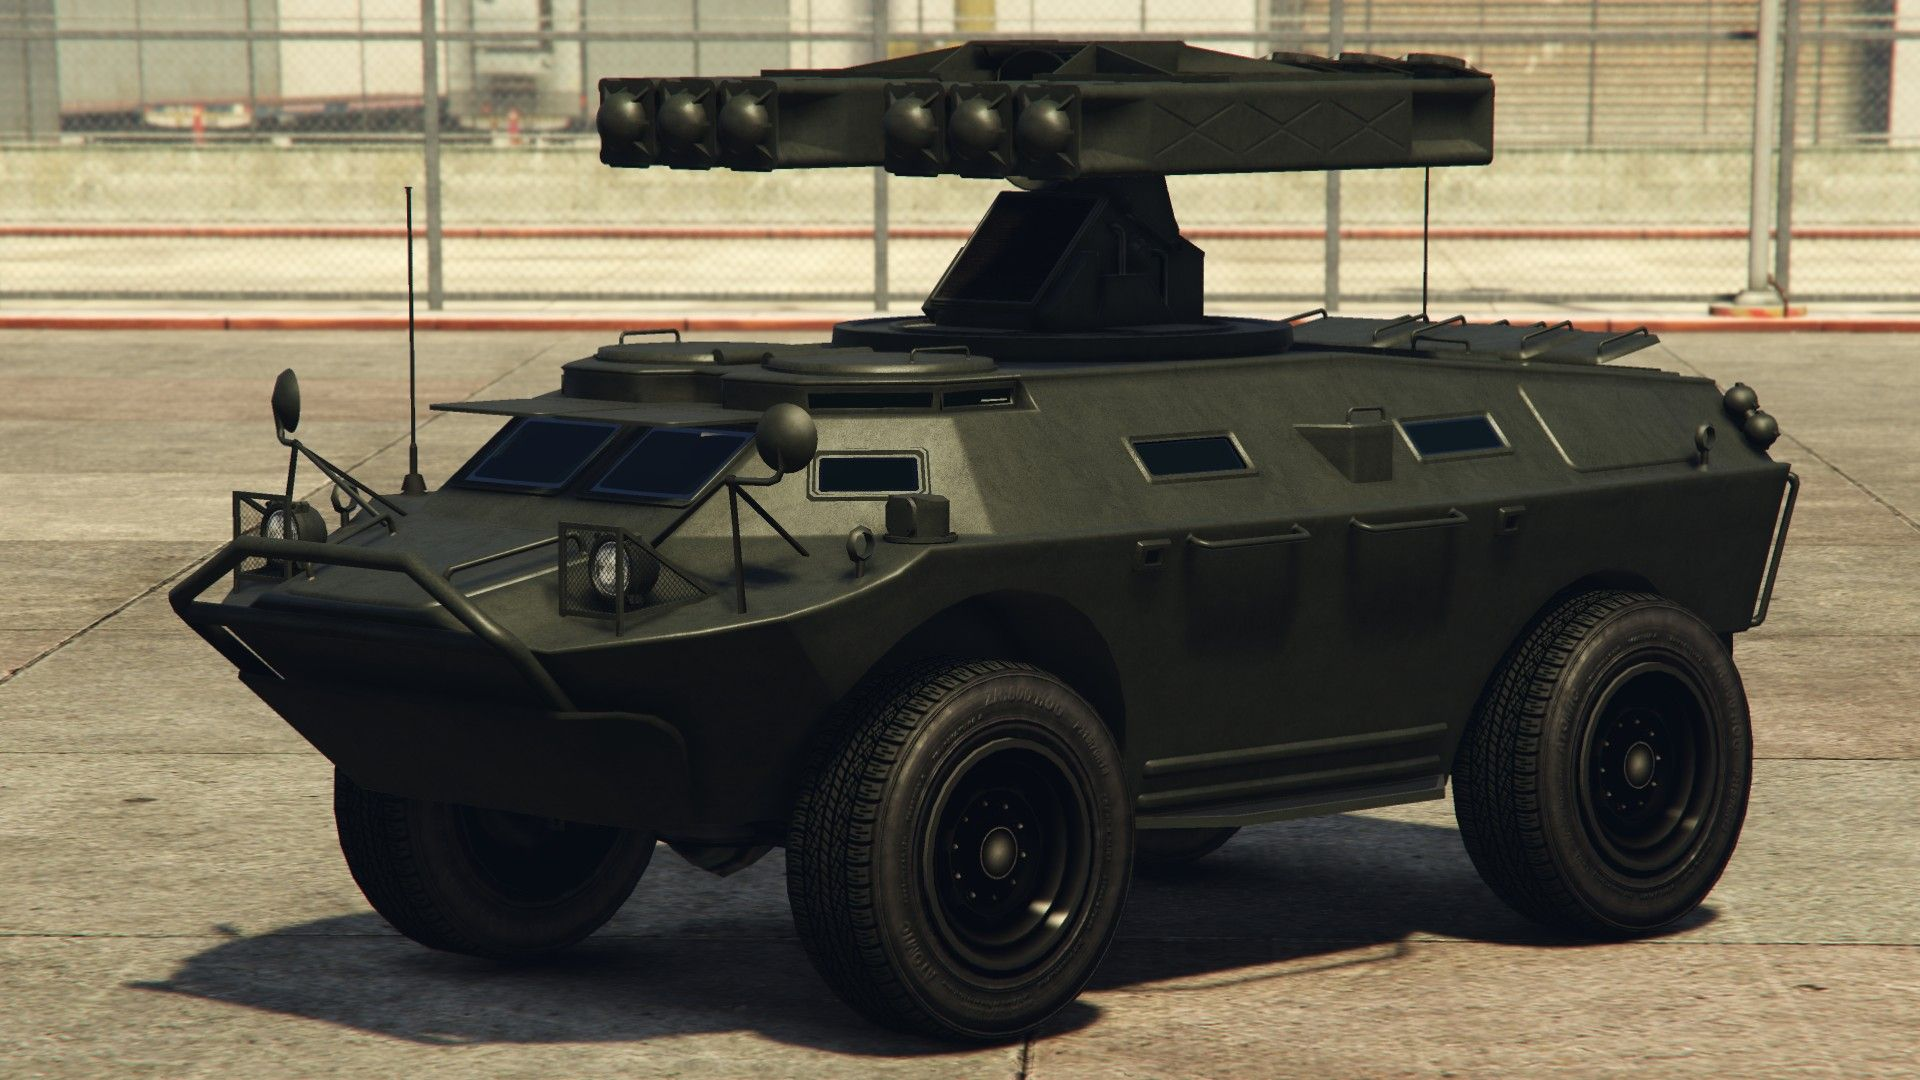 How To Get An Armored Car In Gta 5 Online